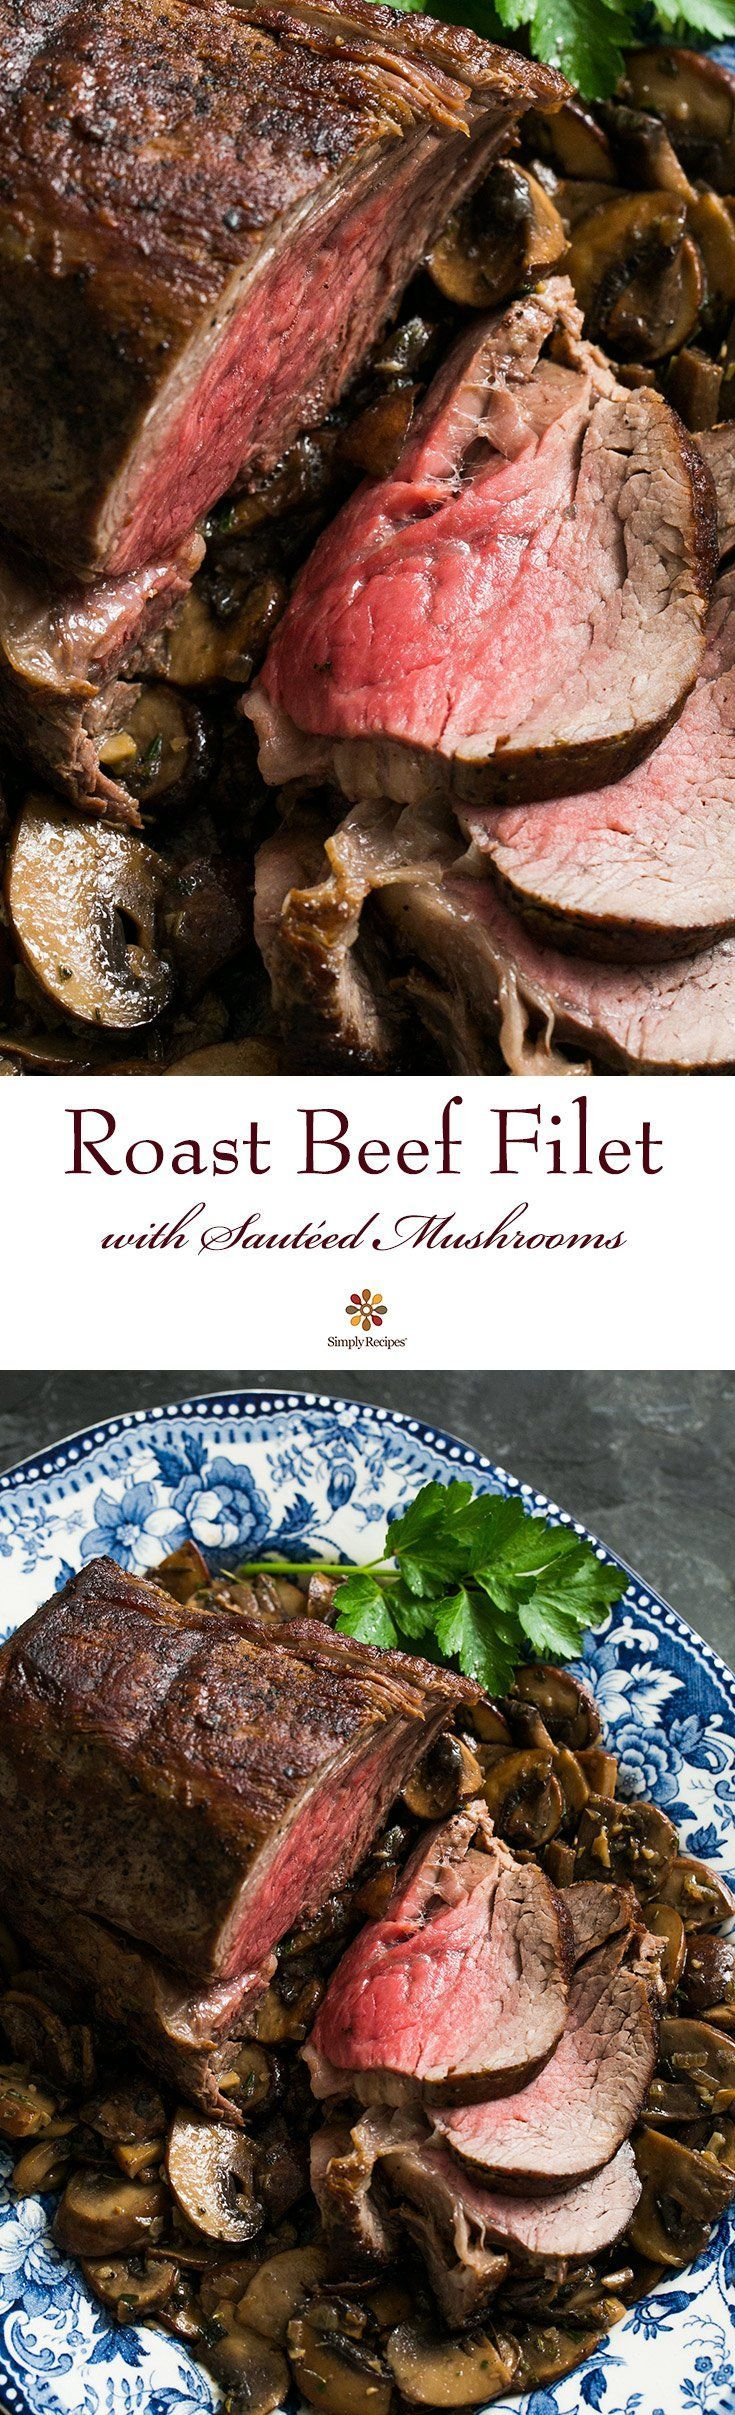 Roast Beef Tenderloin, seared then oven roasted, served with mushrooms sautéed in the pan drippings with butter and herbs. Perfect for a special meal or entertaining! On SimplyRecipes.com